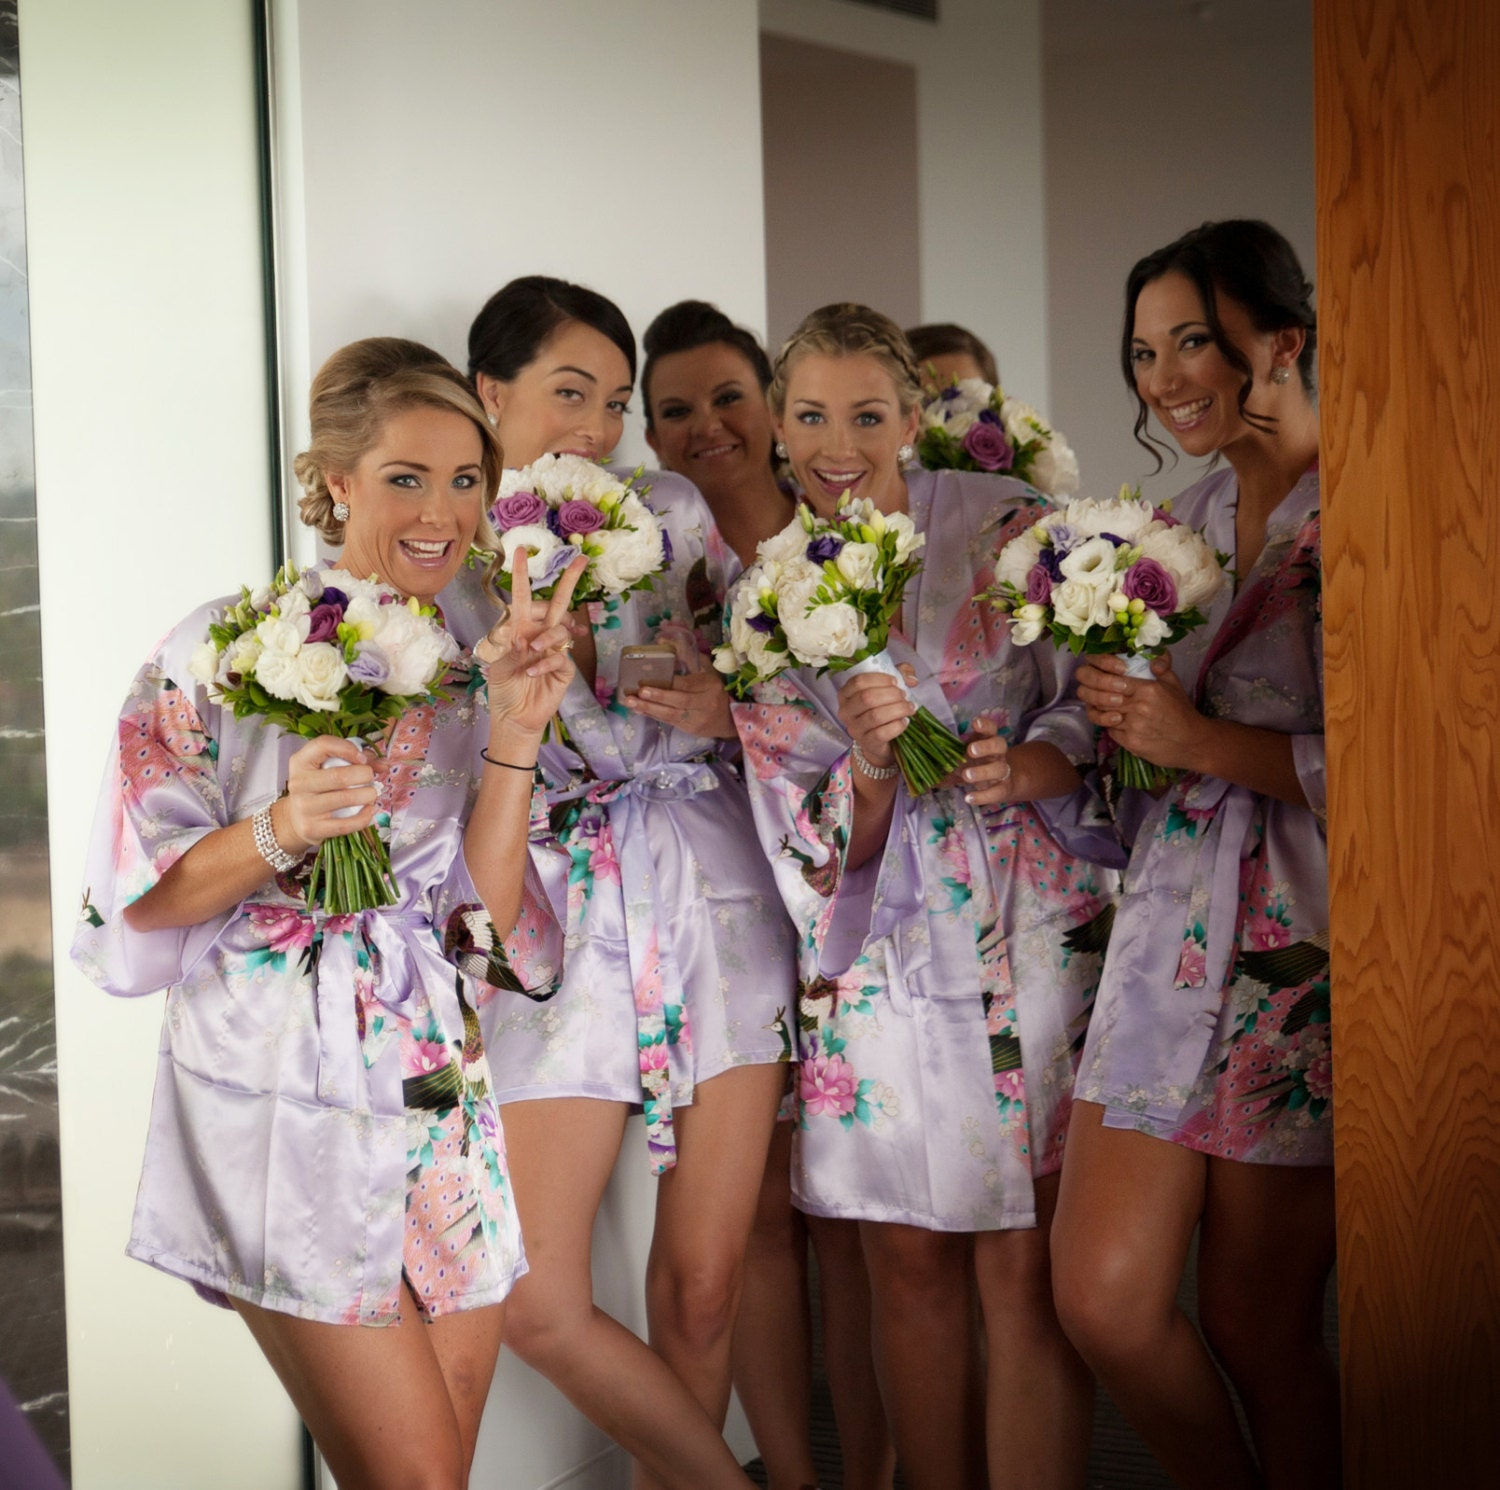 CD1 satin robes for bridal party cheap bridesmaid gifts under